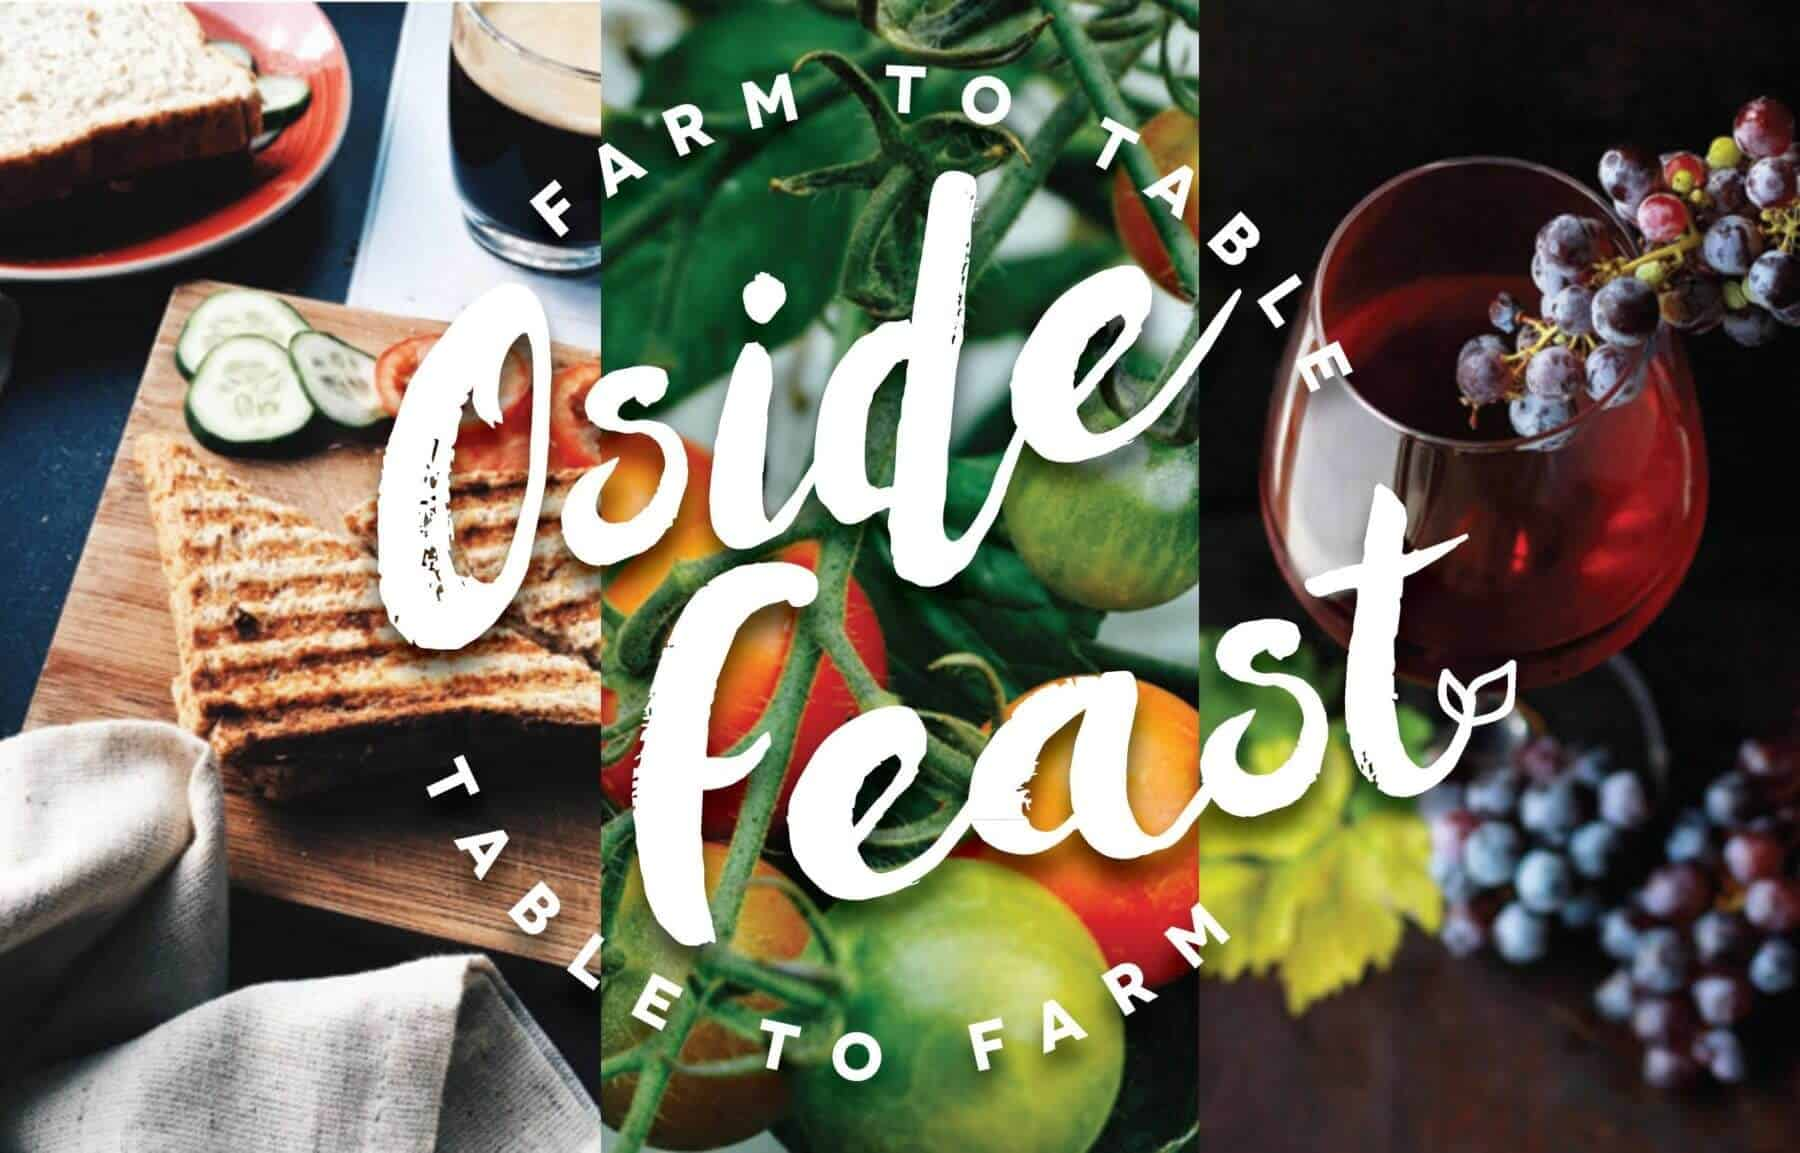 O'side Feast - Farm to Table- Table to Farm